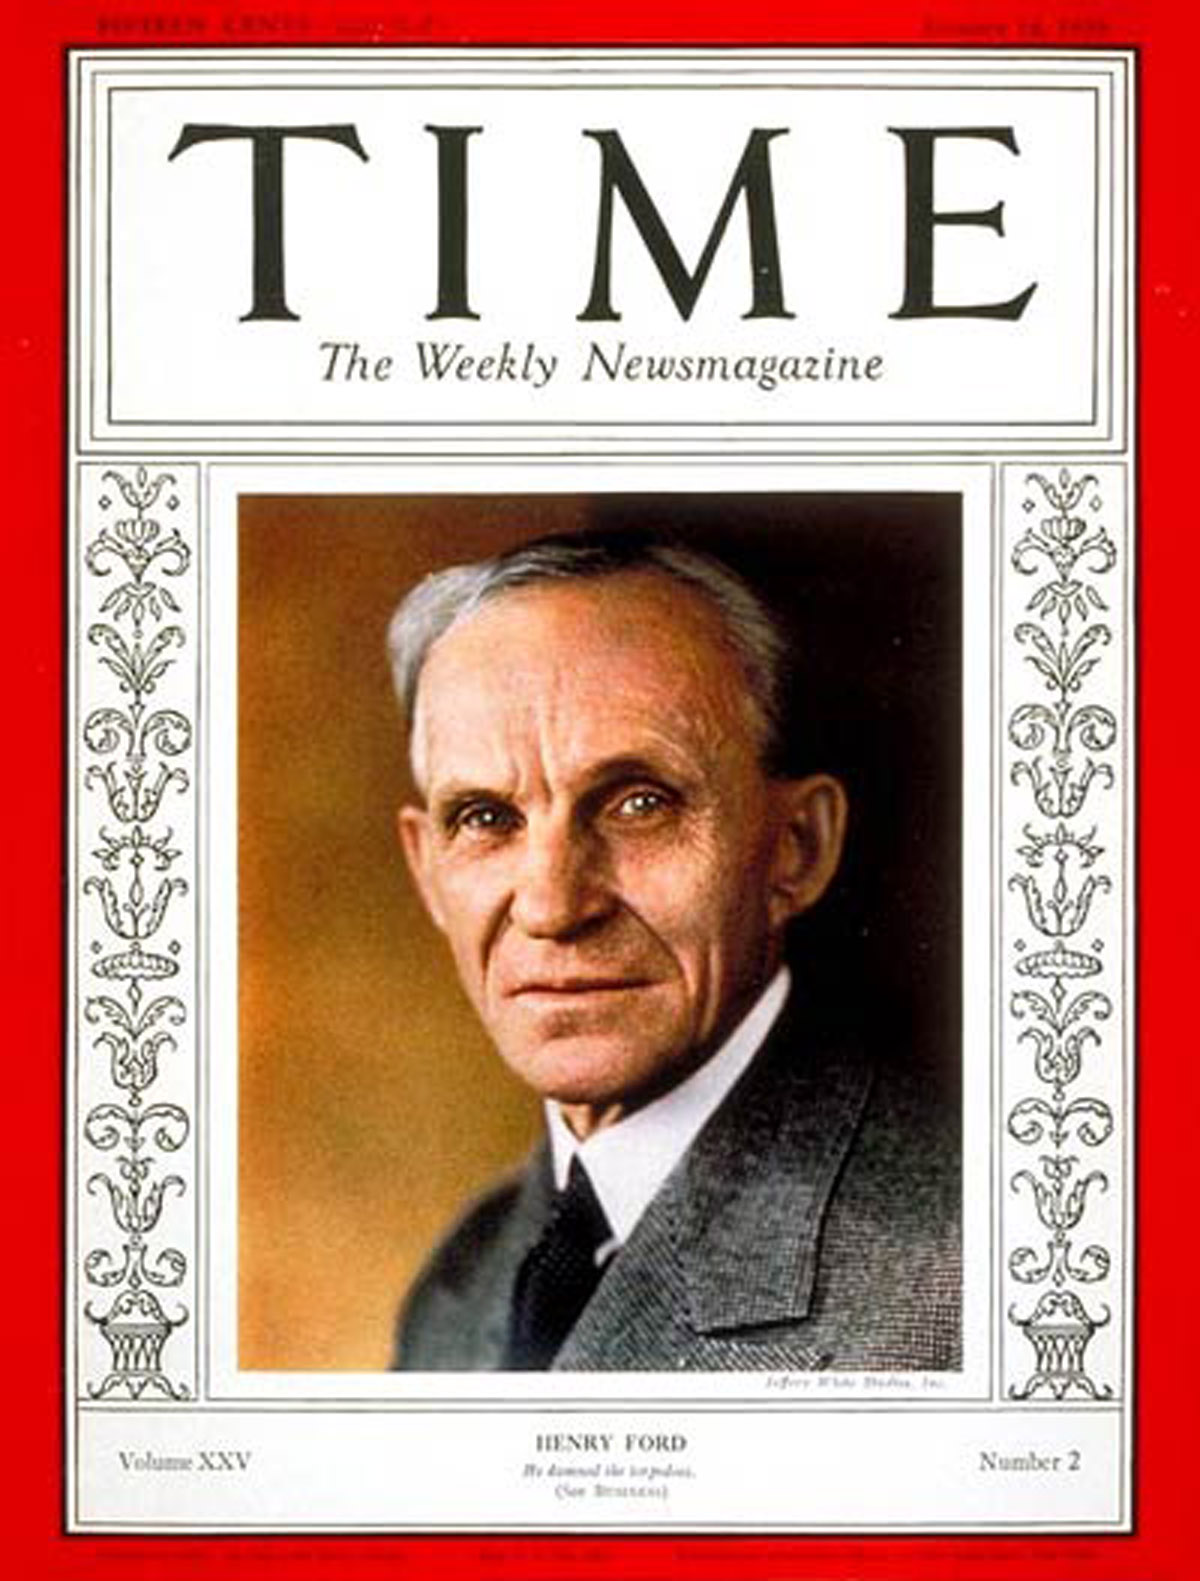 Henry Ford on the cover of Time Magazine in 1935